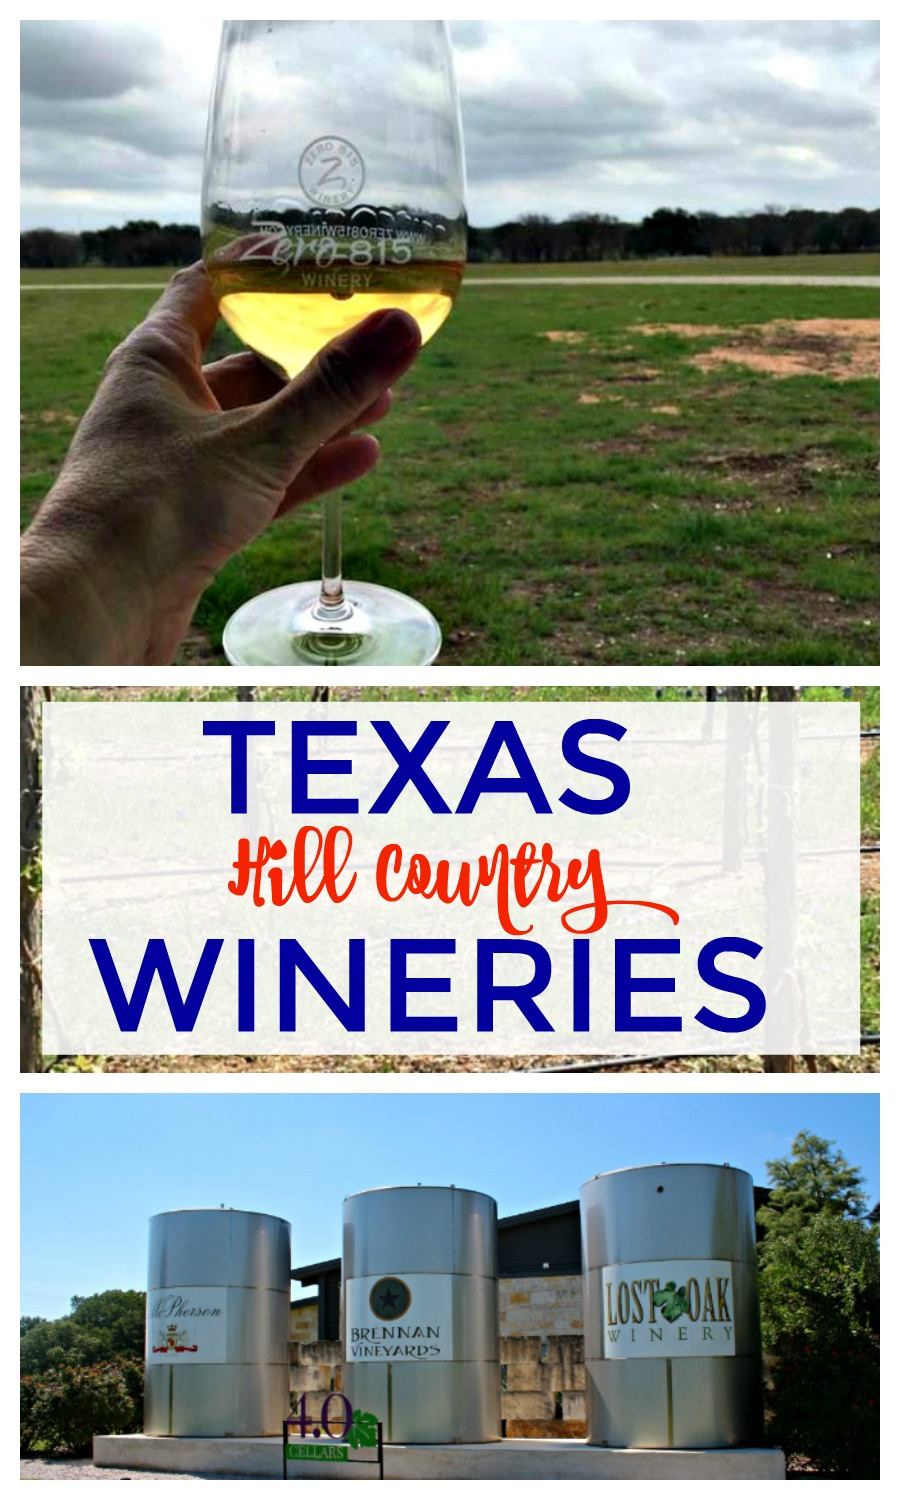 Traveling to the Texas Hill Country and want kid-free fun? Check out the Texas Hill Country Wineries. Perfect for a romantic weekend or a girlfriend's getaway!